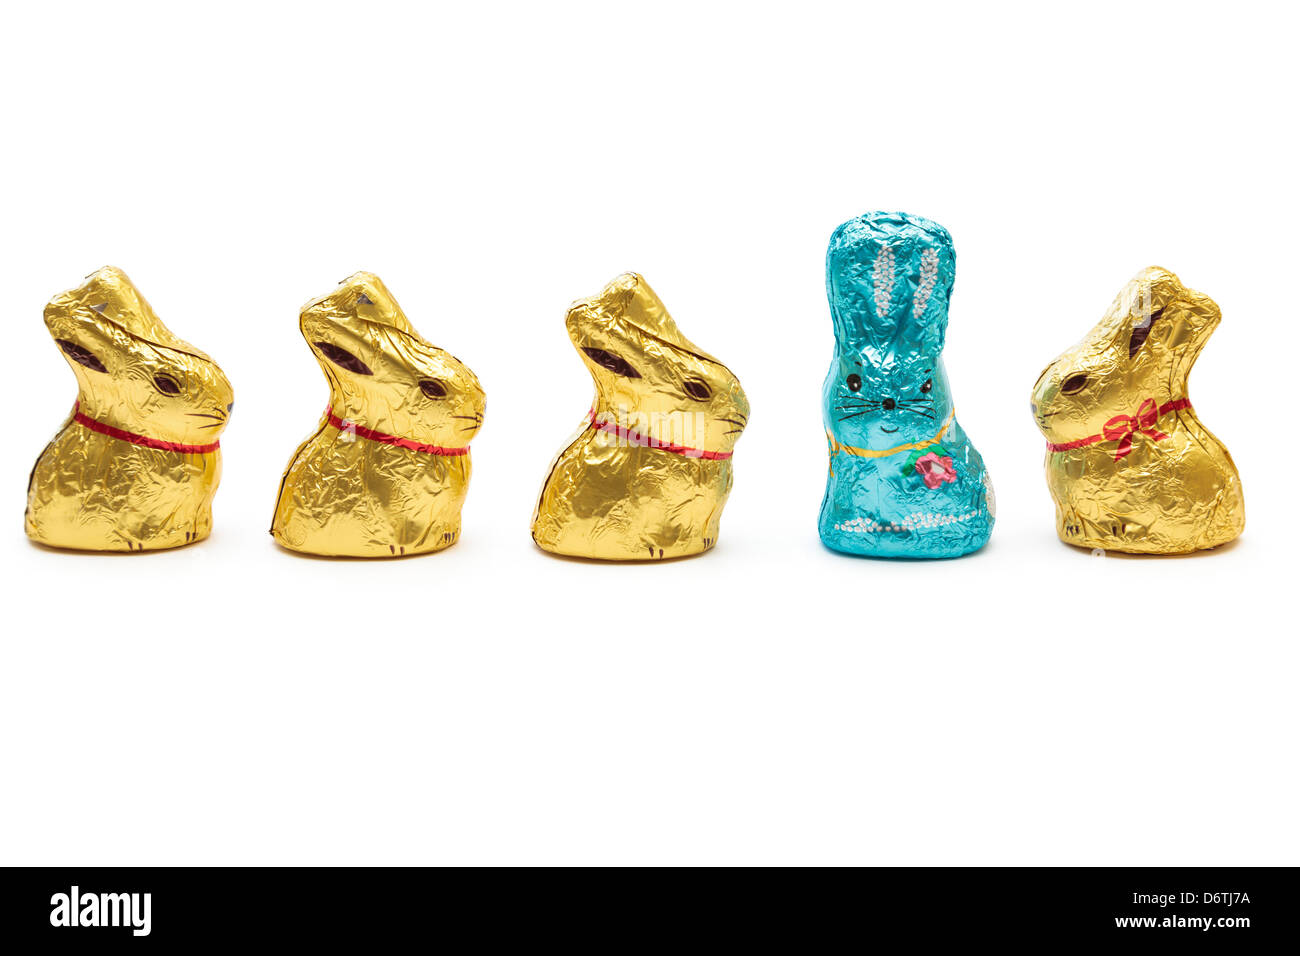 Four yellow gold wrapped chocolate Easter bunnies looking at one blue Easter bunny to illustrate stand out from - Stock Image